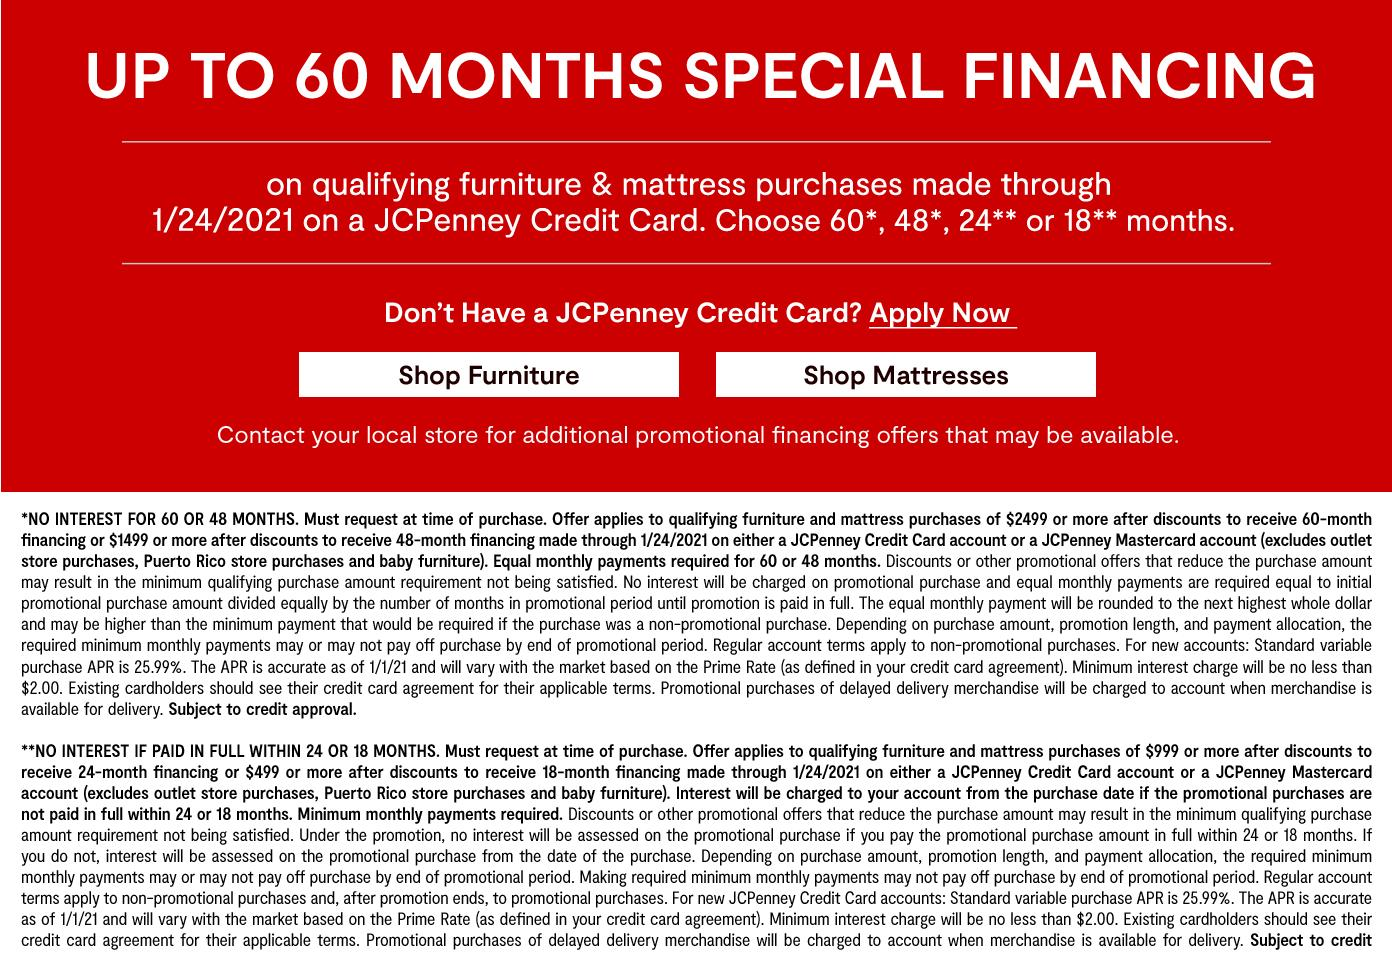 Up to 60 months special financing on qualifying furniture & mattresses purchases by 1/24/2021 on a JCP credit card. choose 60, 28, 24,or 18 months. get details